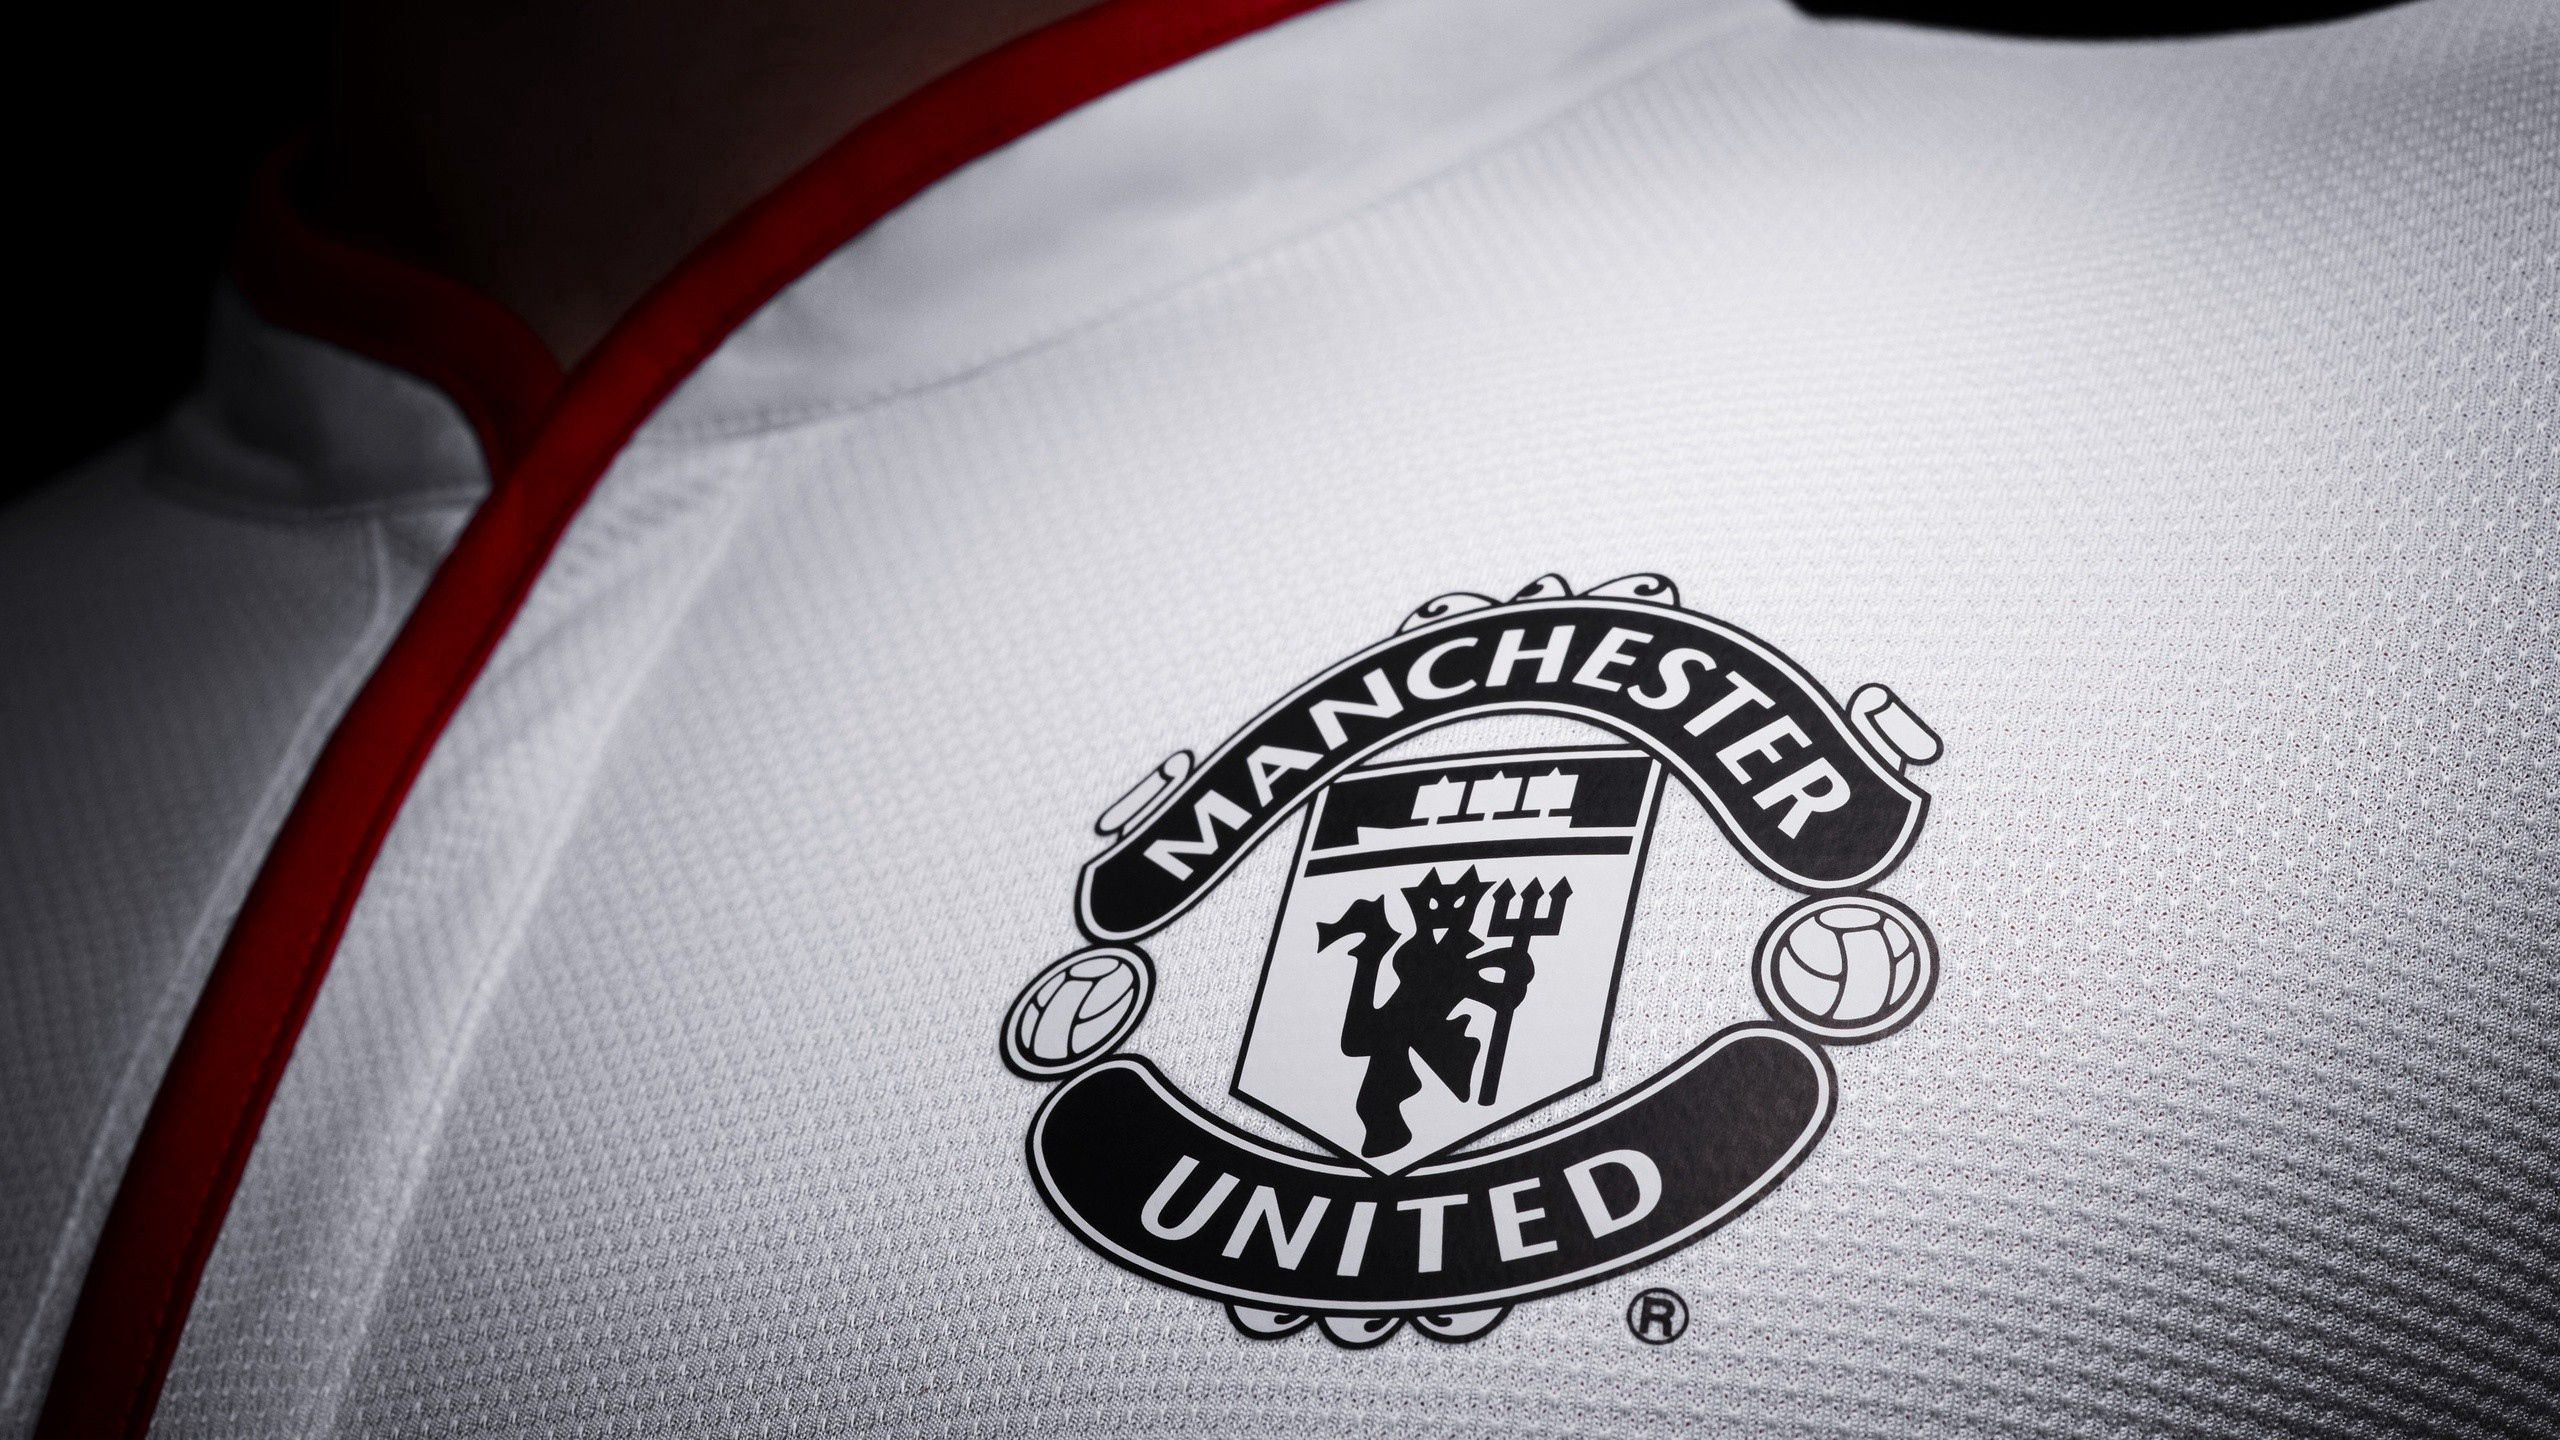 54802 download wallpaper Sports, Football, Manchester United, Logo, Logotype screensavers and pictures for free